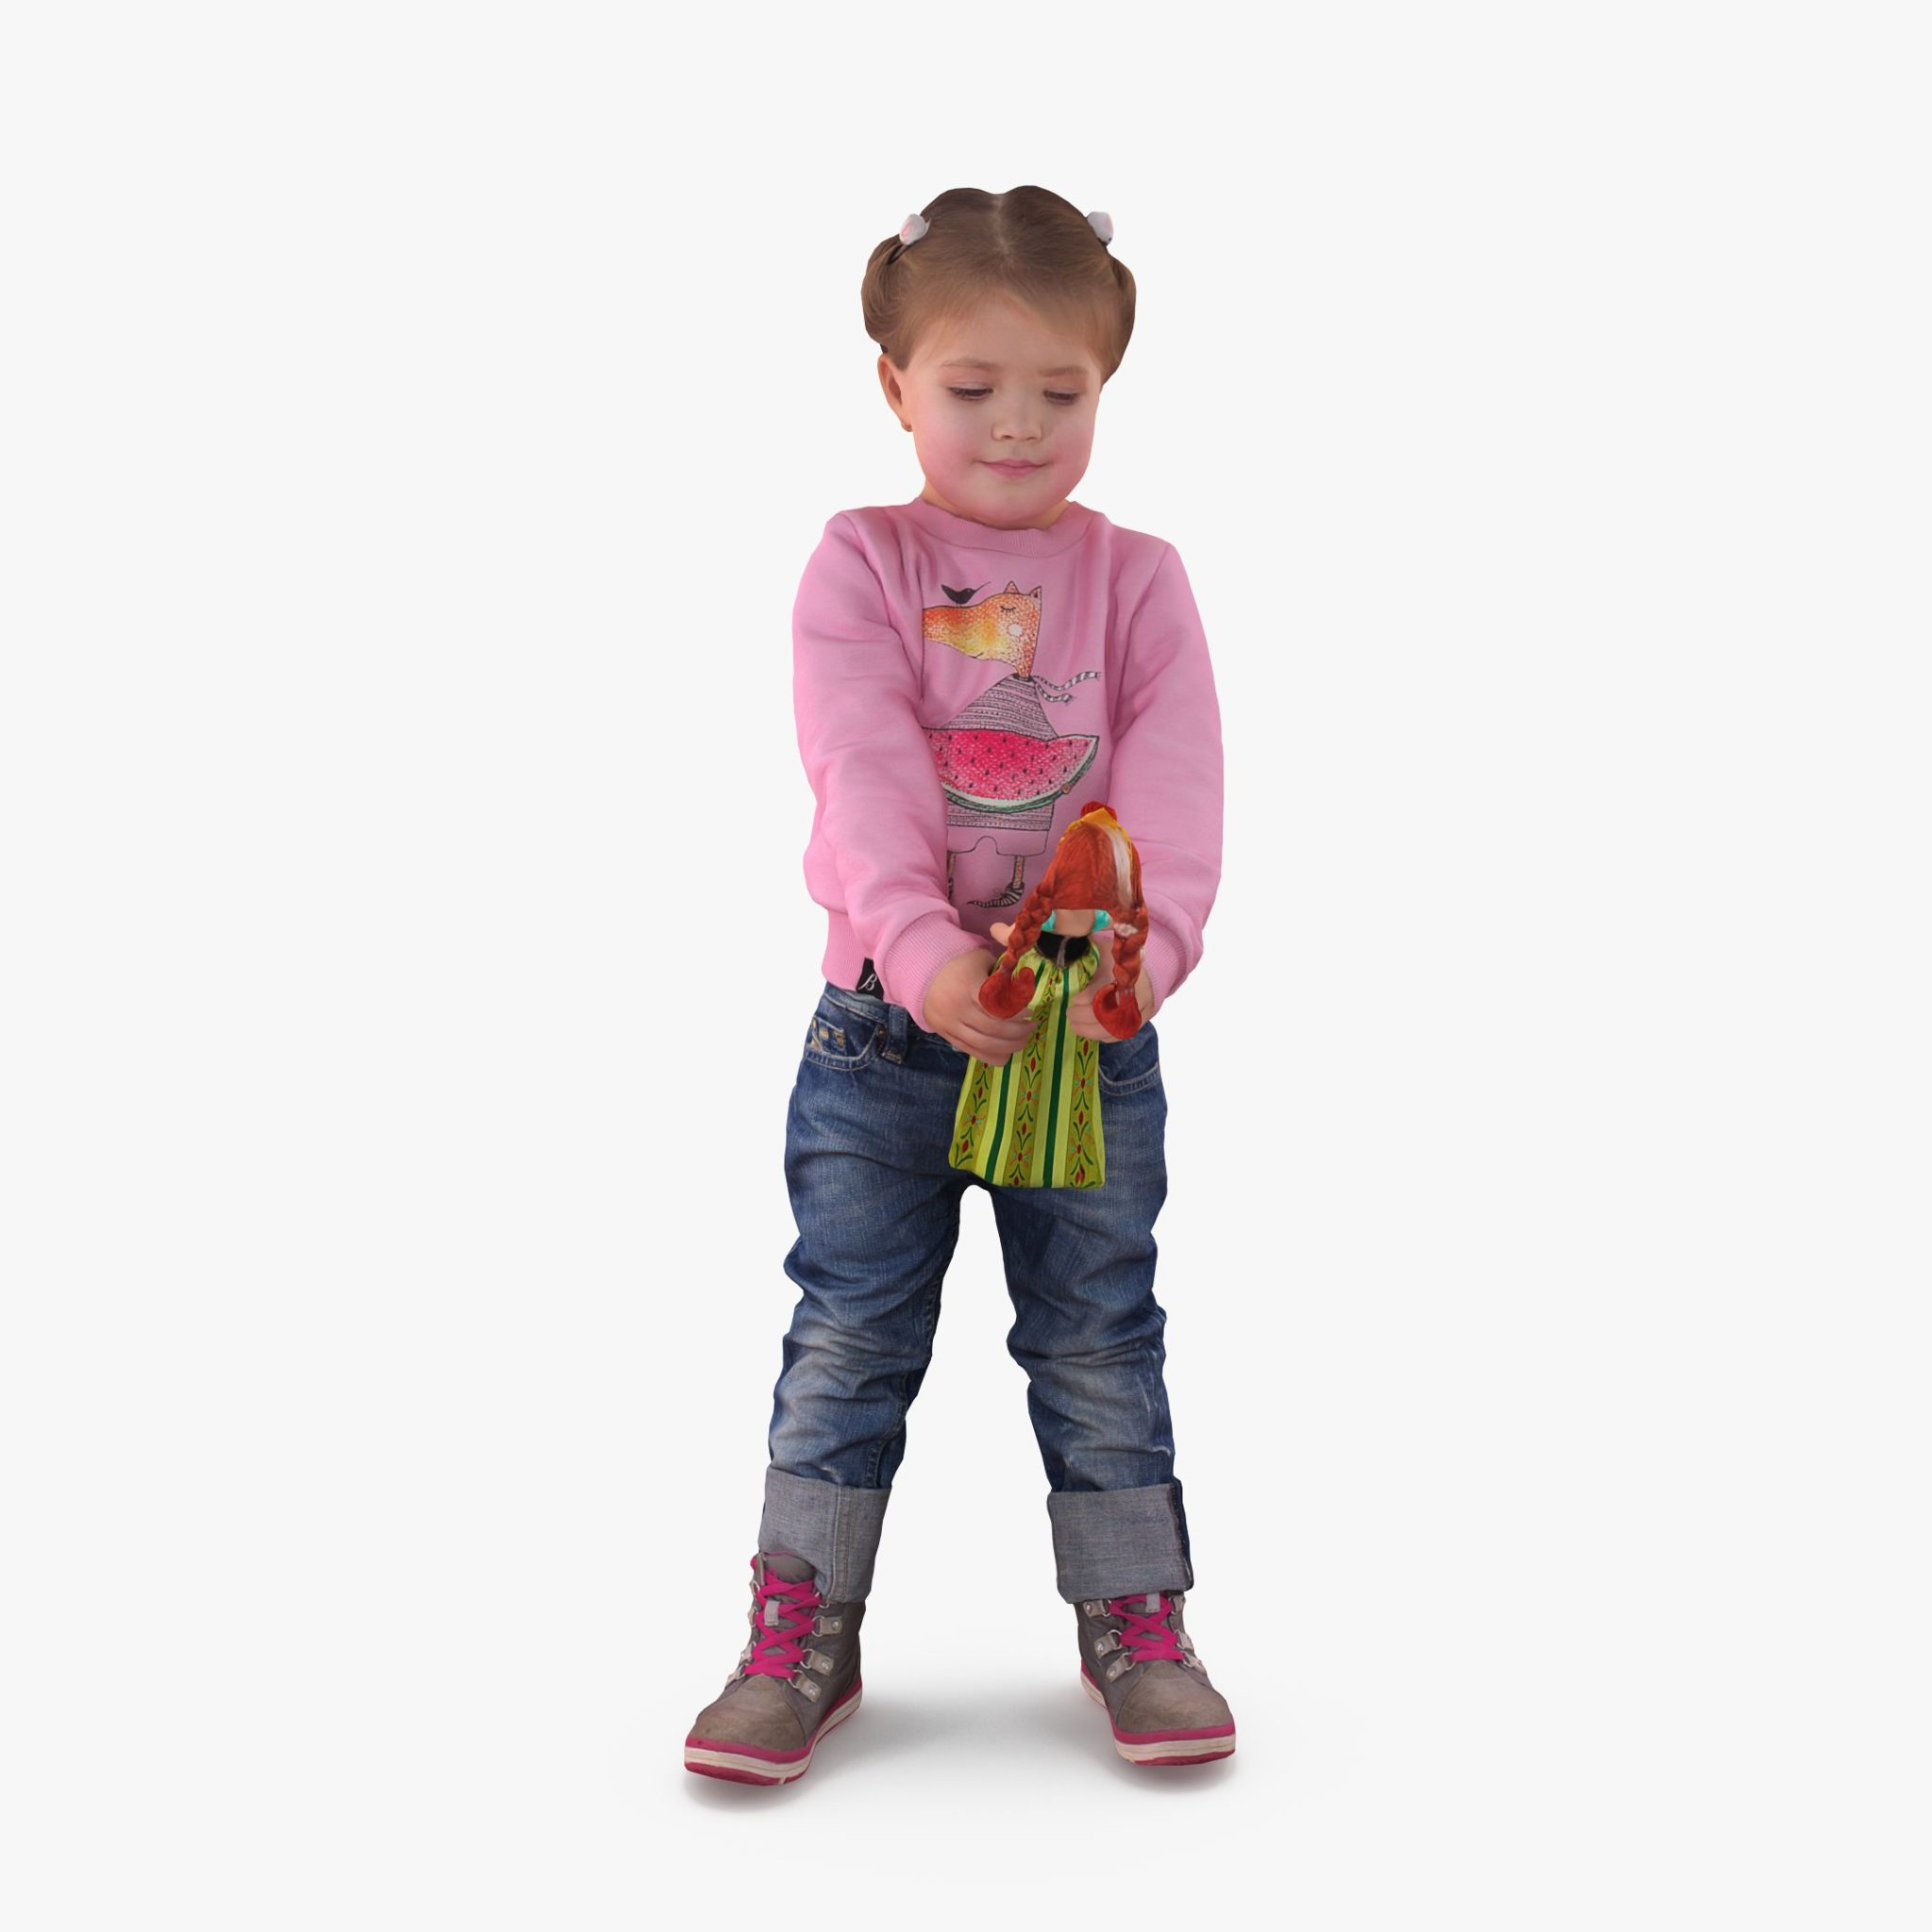 Girl With a Doll 3D Model | 3DTree Scanning Studio